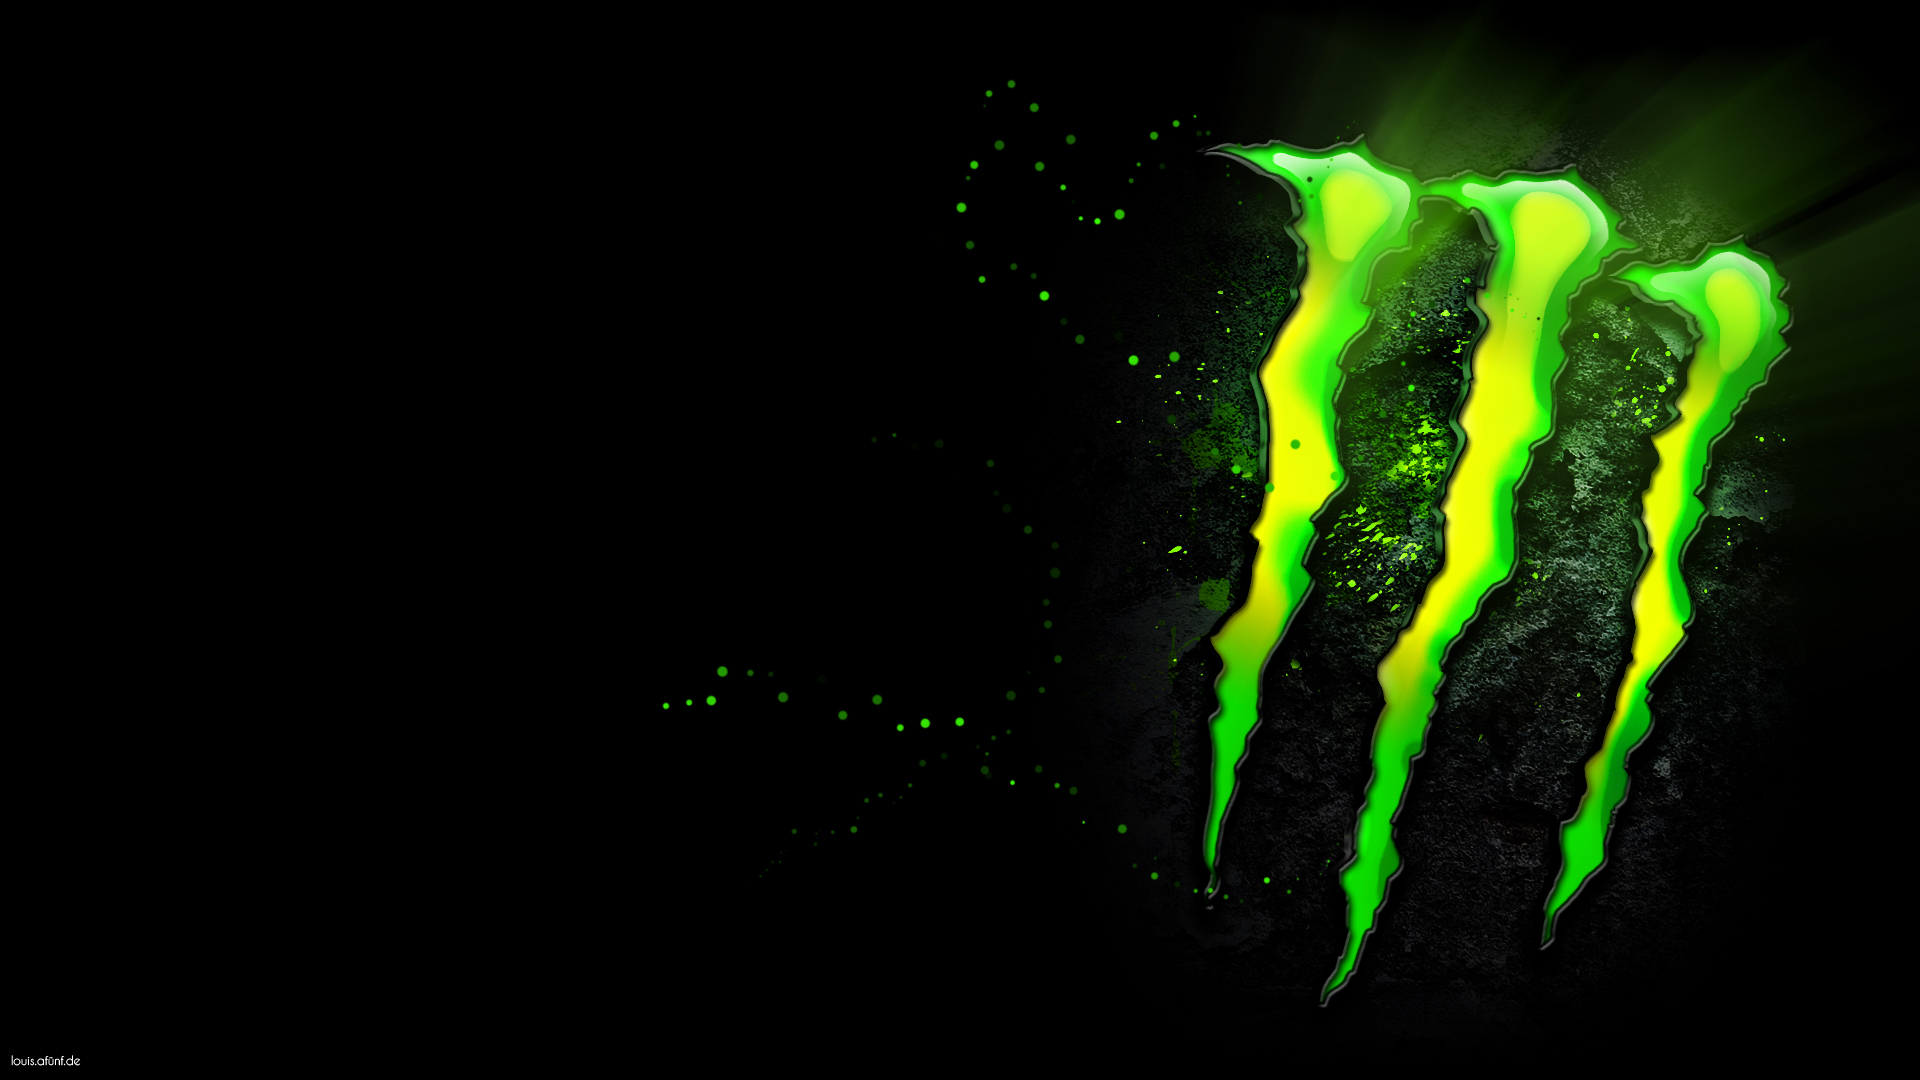 Red Bull Wallpaper Hd Iphone Monster Full Hd Wallpaper And Background Image 1920x1080